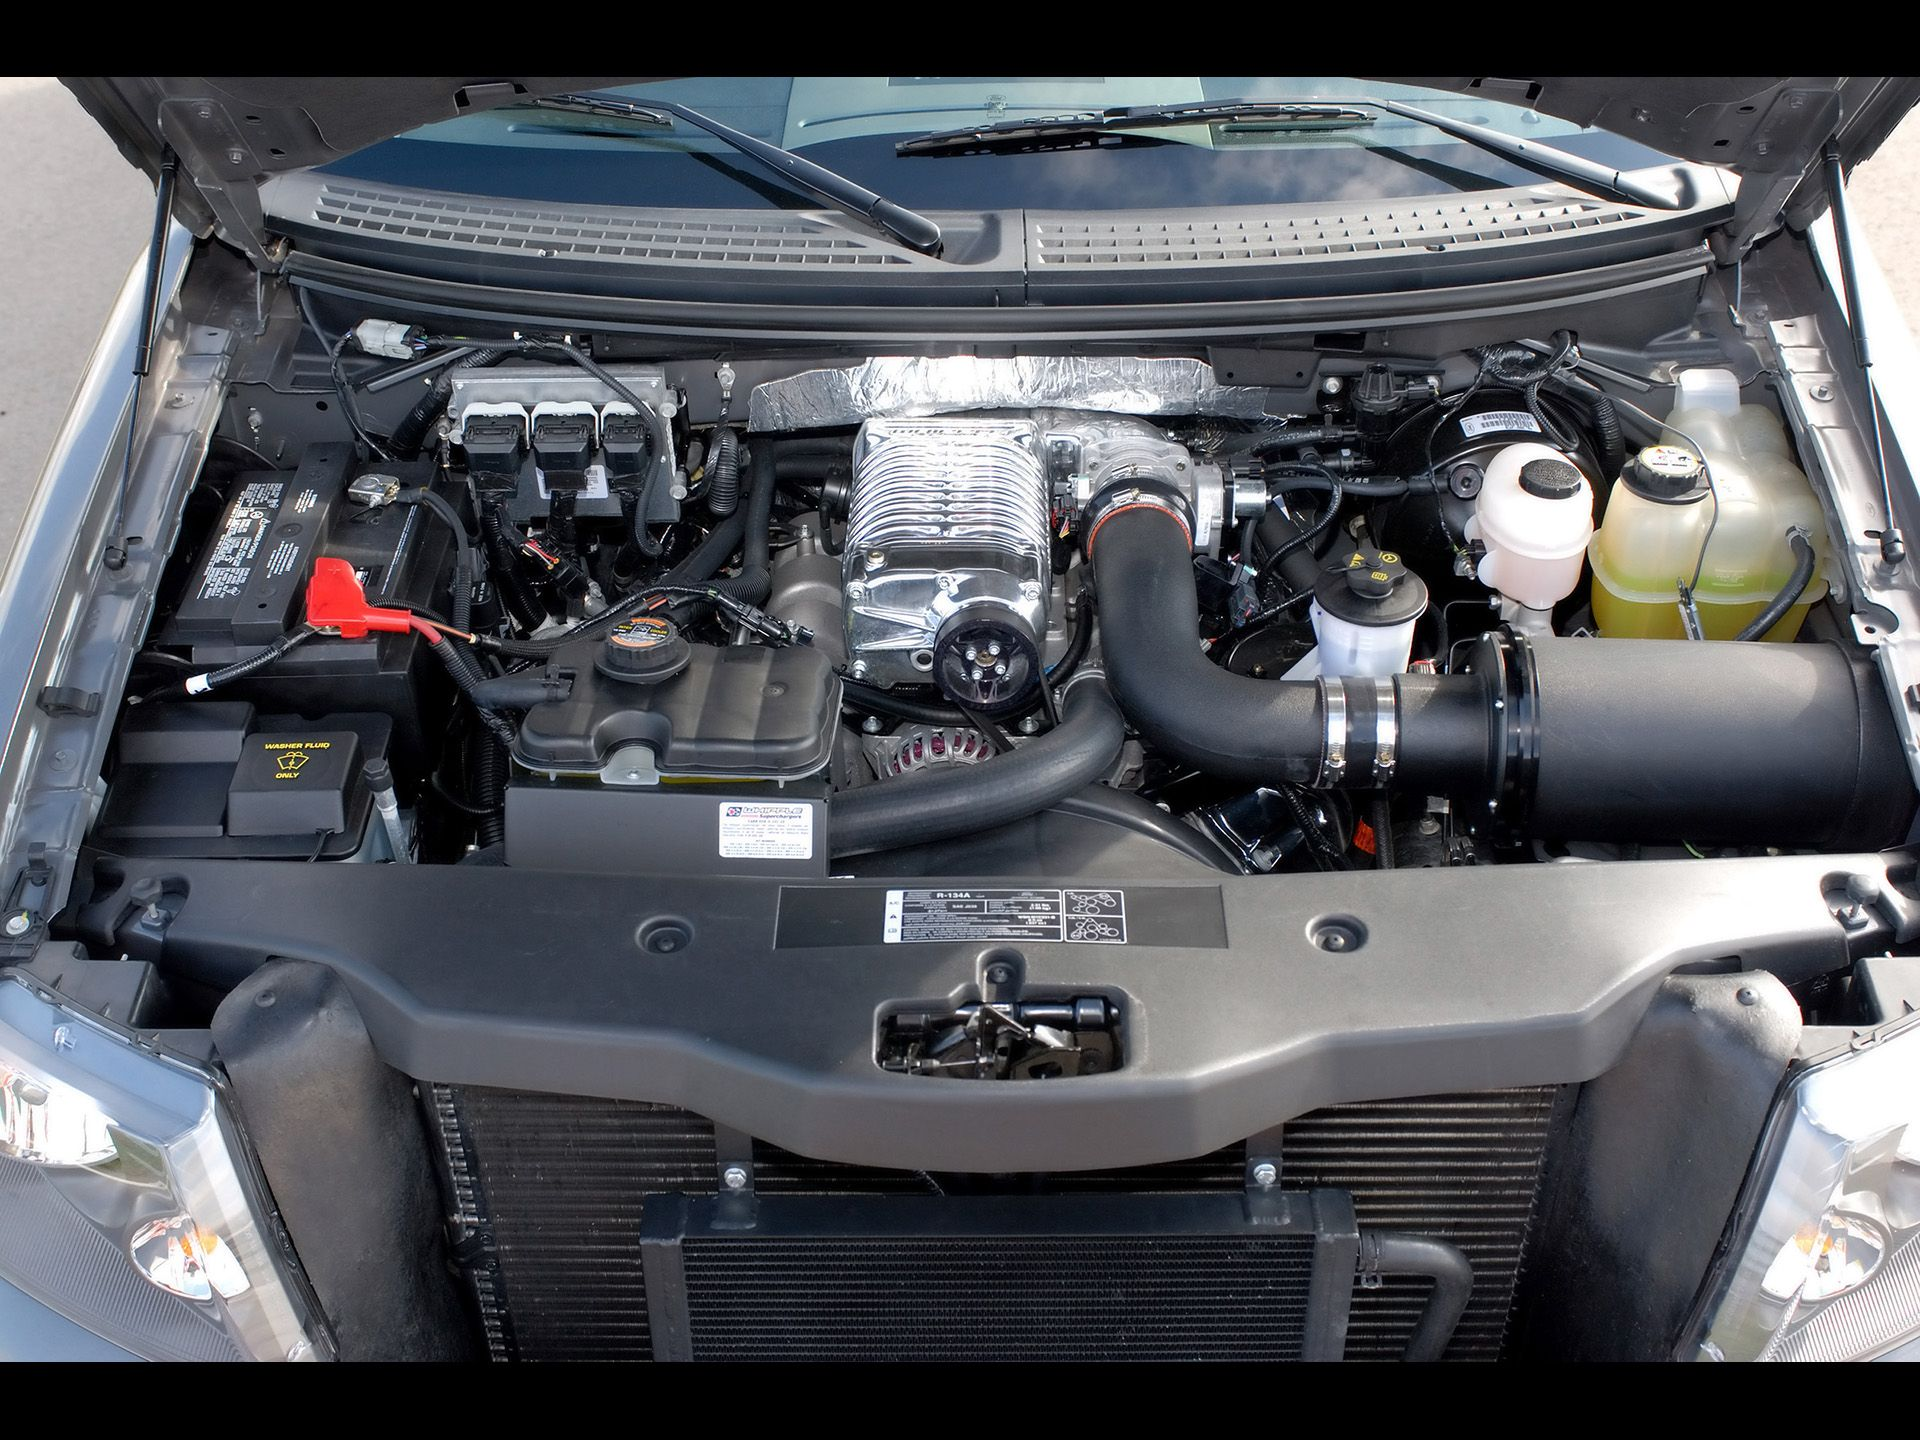 2006 Ford F 150 Fx2 Sport Extreme Engine 1920x1440 Wallpaper Ford F150 Ford Engineering